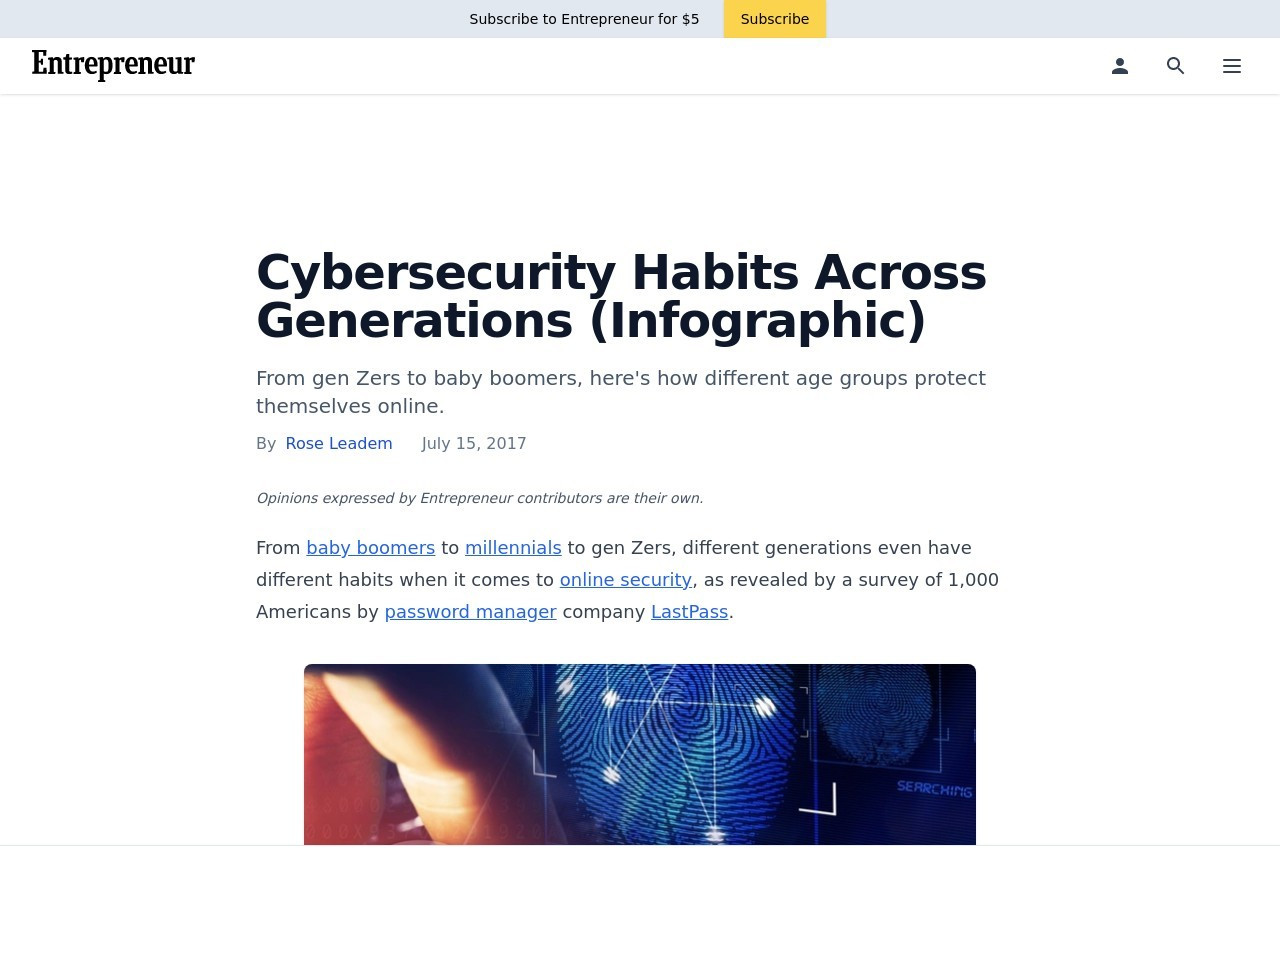 Cybersecurity Habits Across Generations (Infographic)